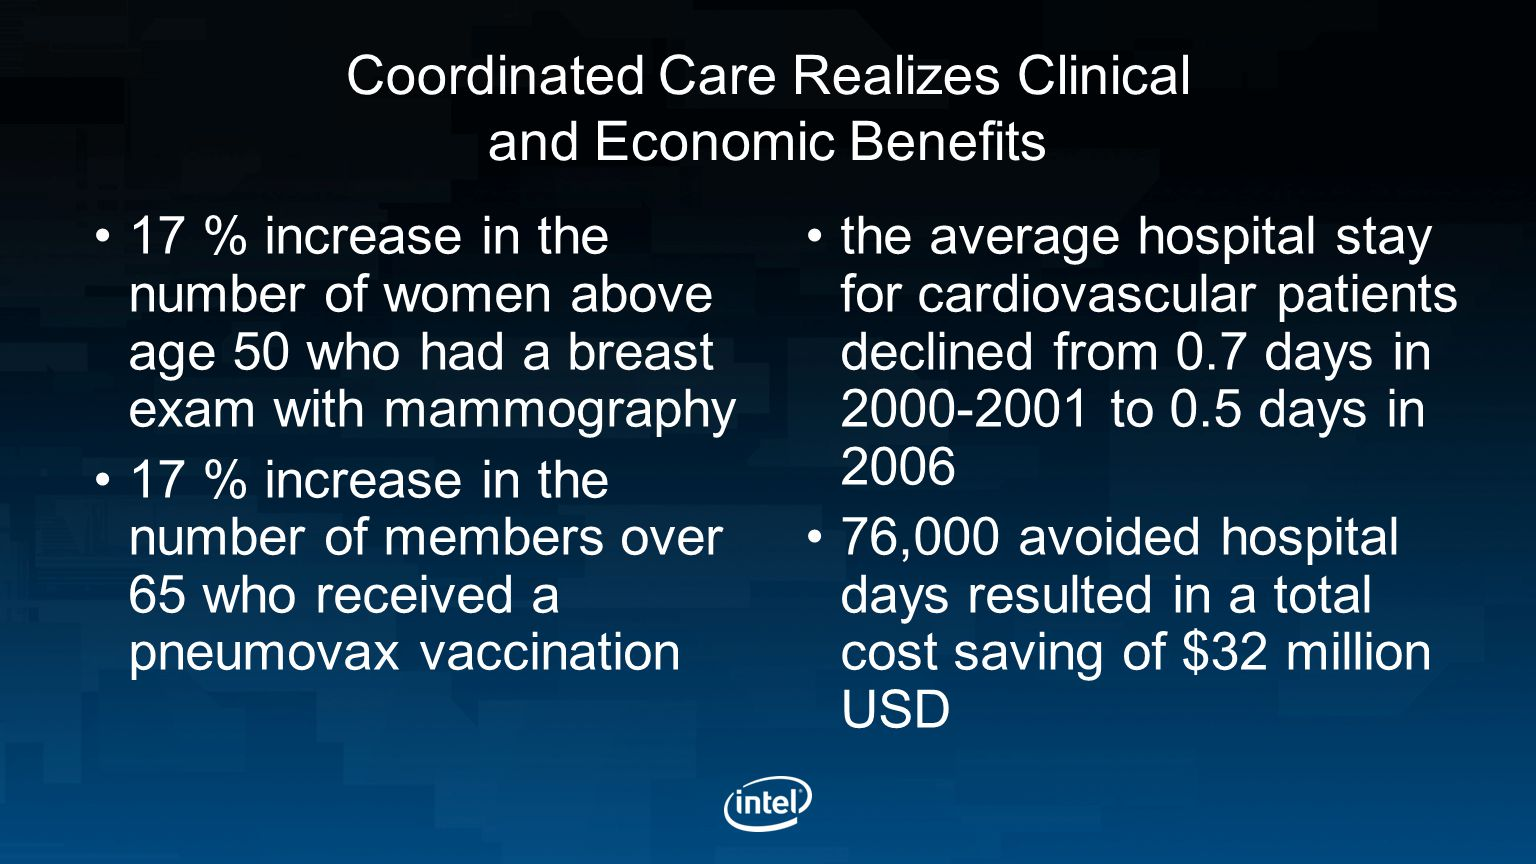 Coordinated Care Realizes Clinical and Economic Benefits